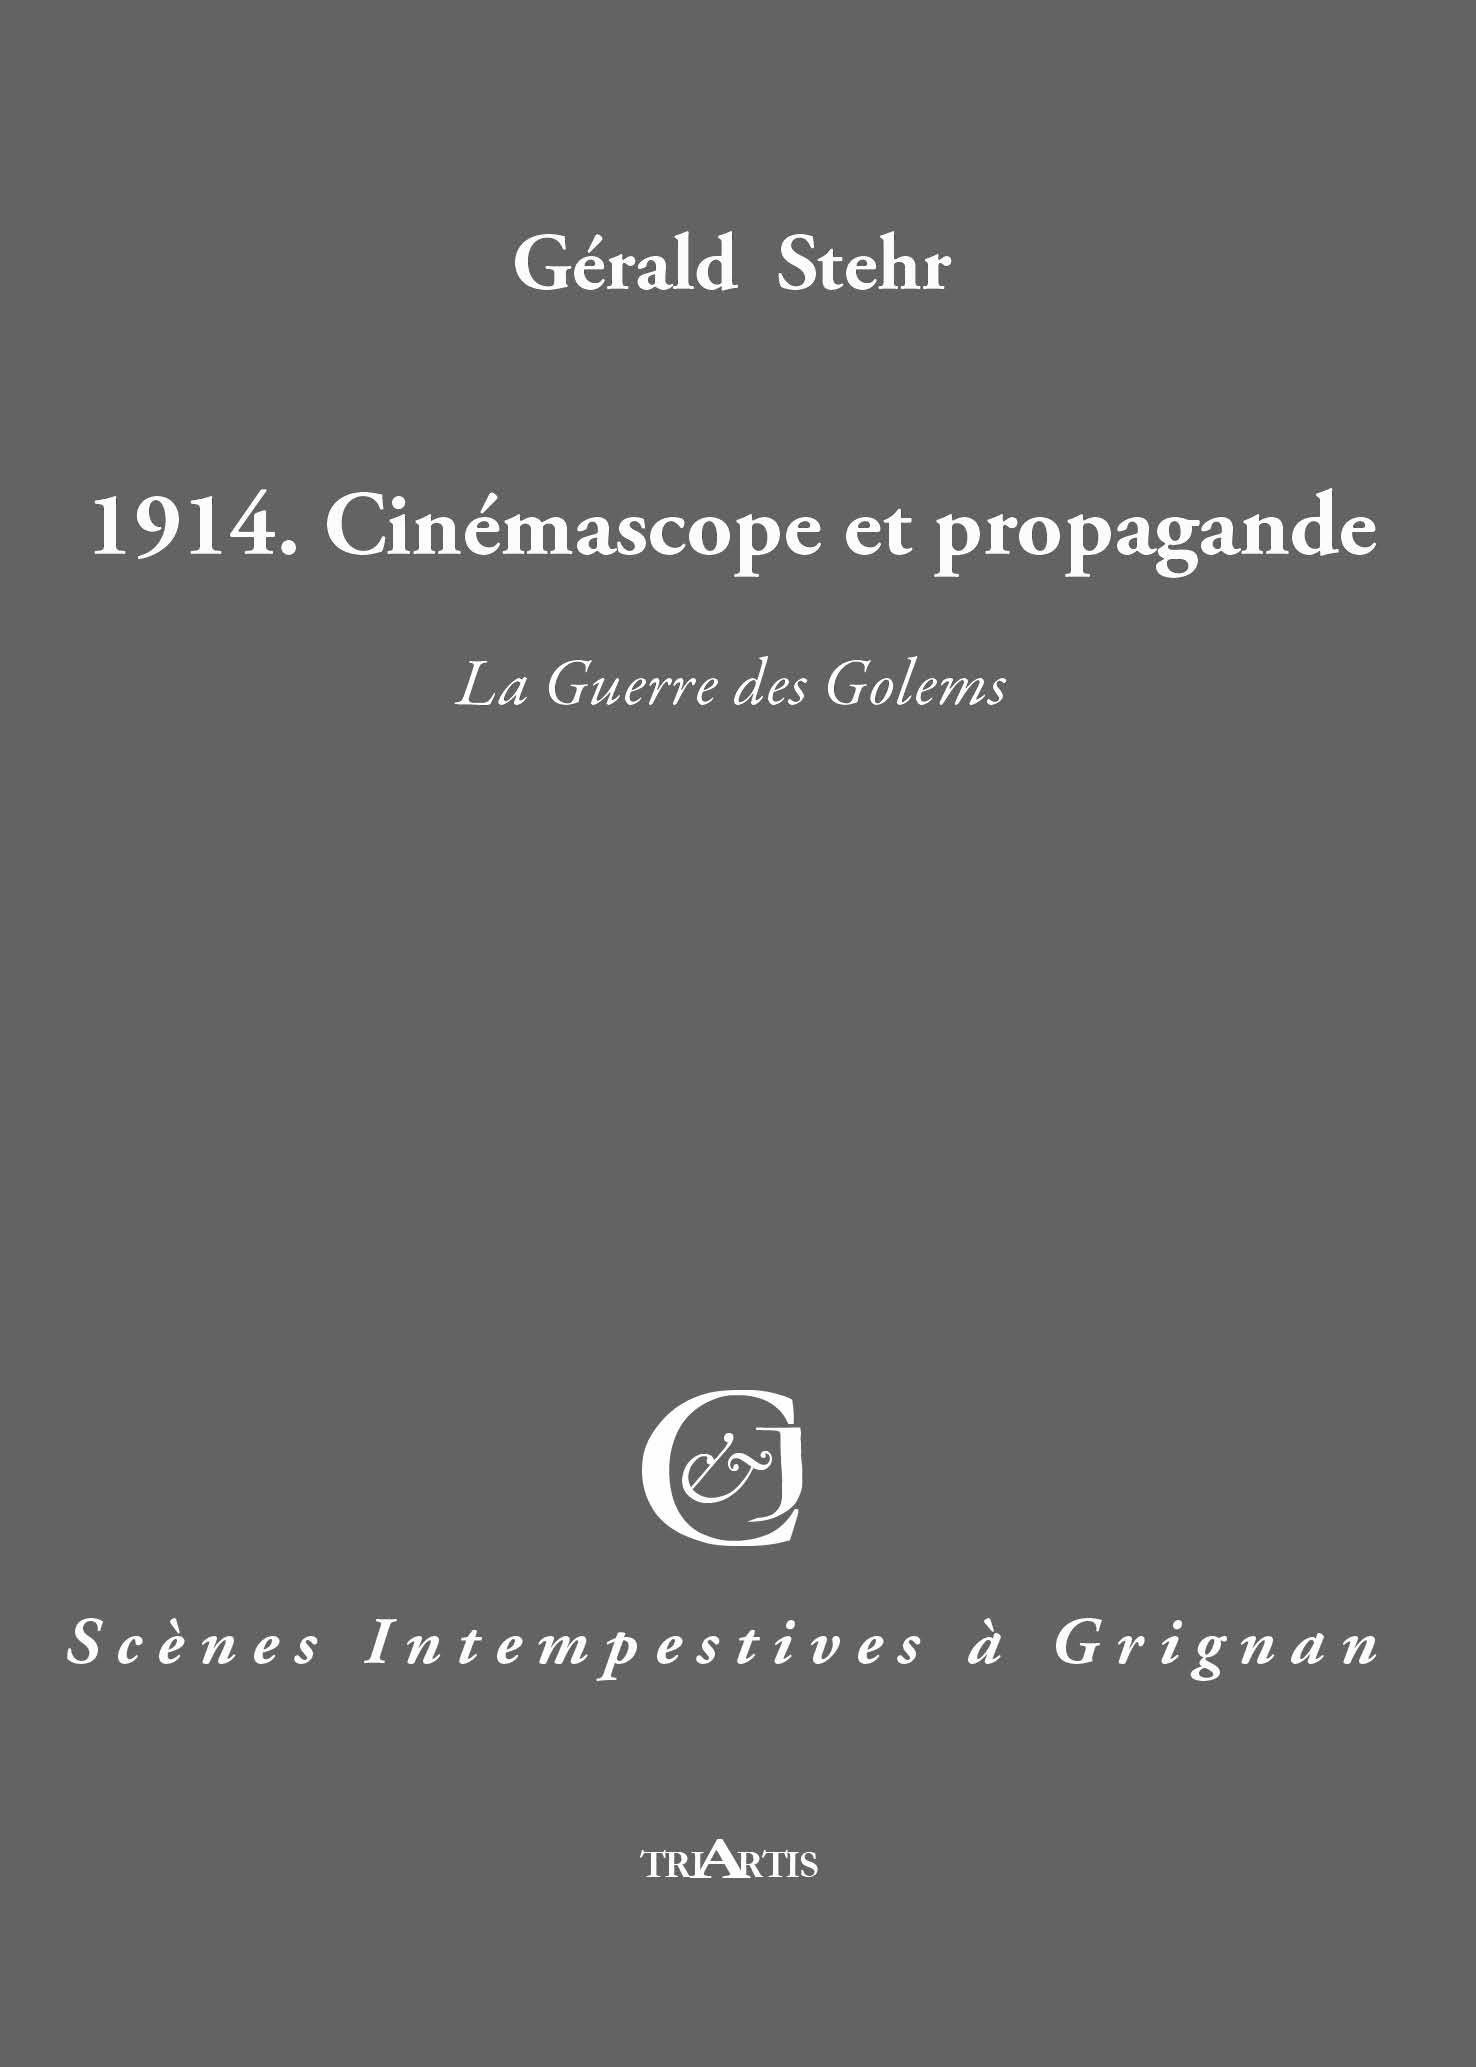 1914. CINEMASCOPE ET PROPAGANDE